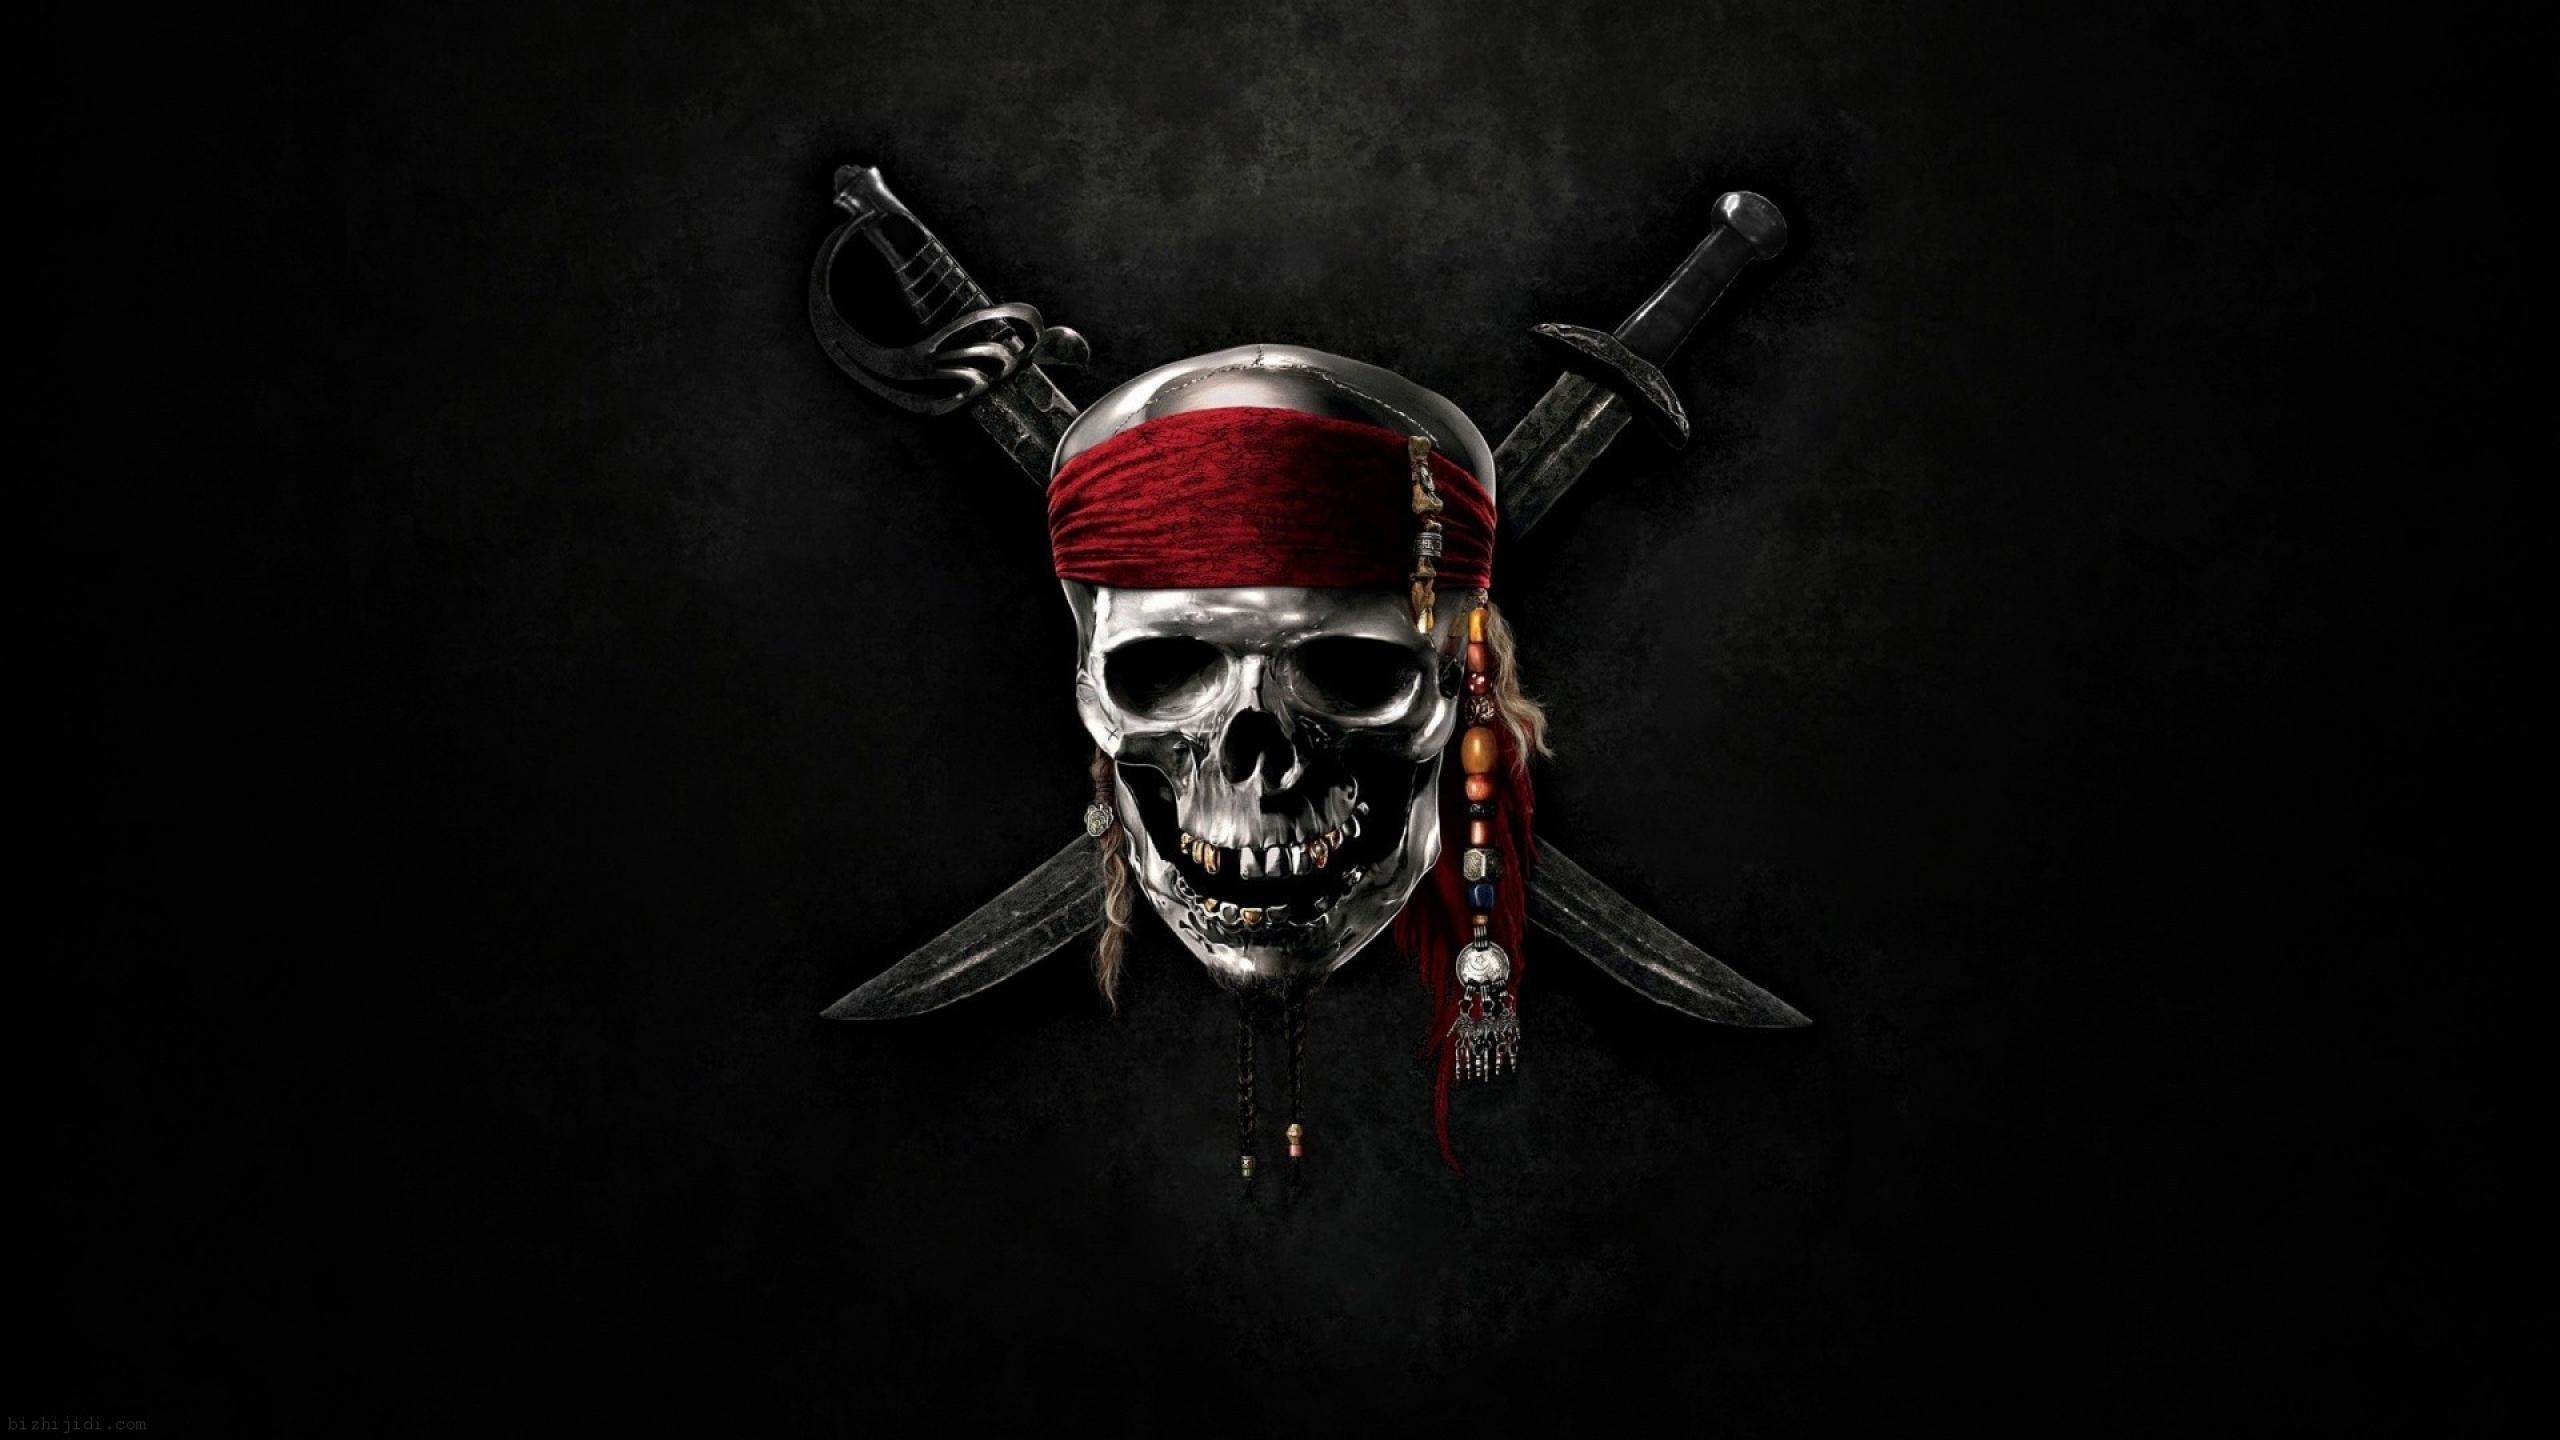 Moving Skull Wallpapers HD (62+ images)